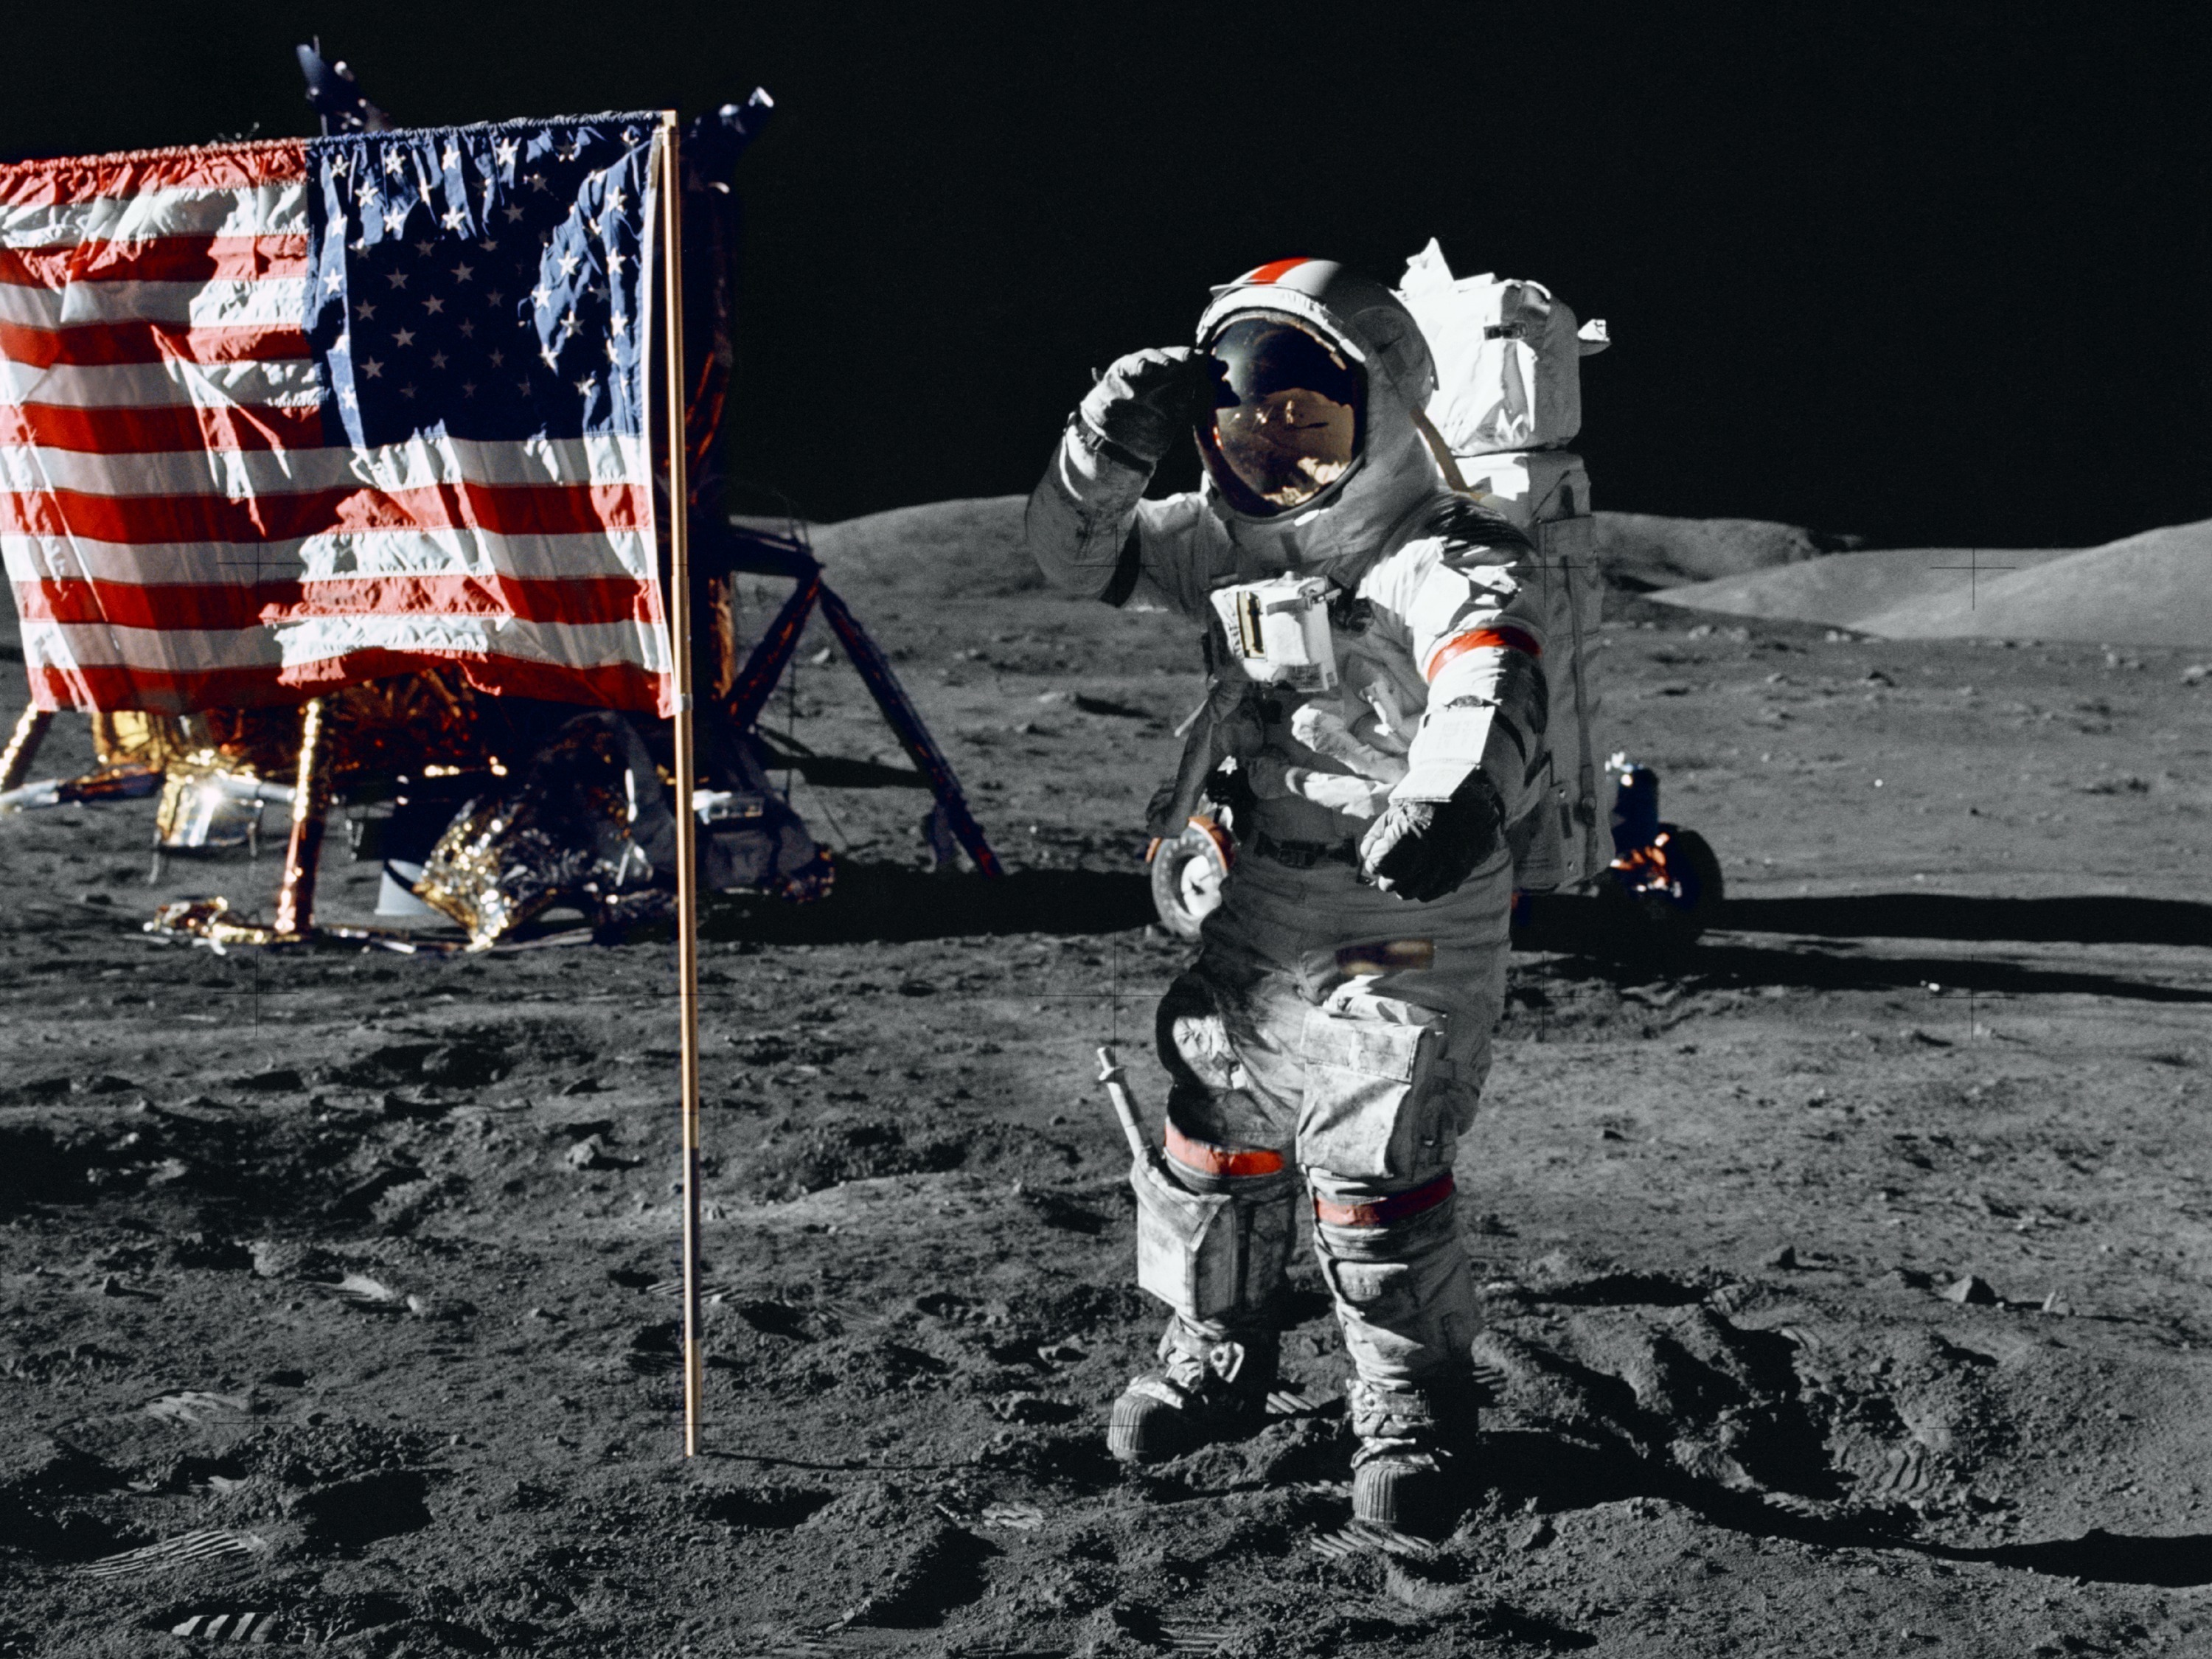 Astronaut Gene Cernan salutes the U.S. flag during his moonwalk in 1972. No one else has been there since Apollo 17 left. (NASA)